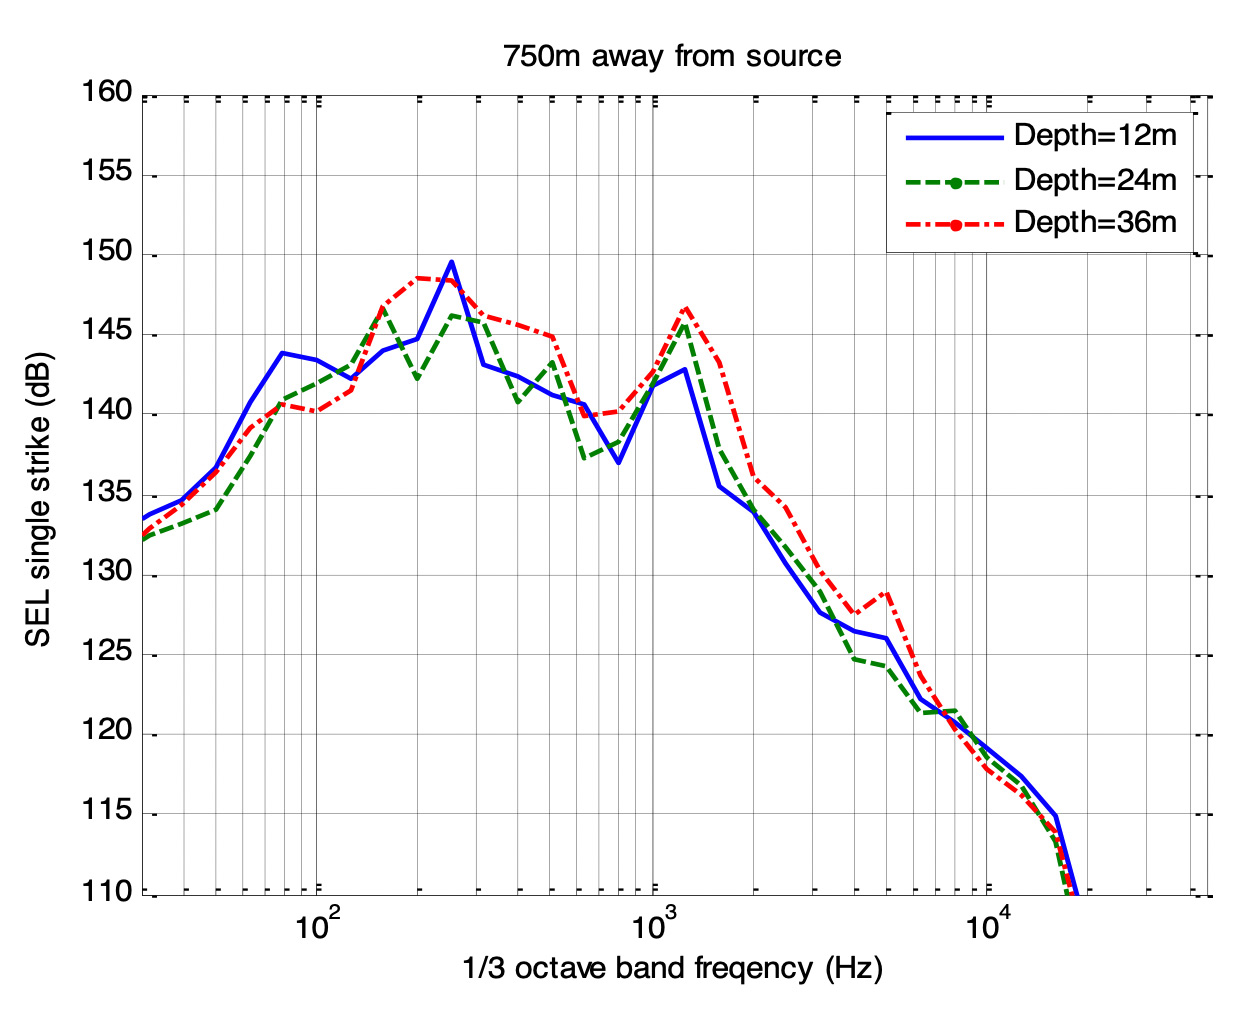 Sound Exposure Level (SEL) of a single hammer strike at 750 m taken in German waters during a conductor-driving campaign. Source: OSC, 2015